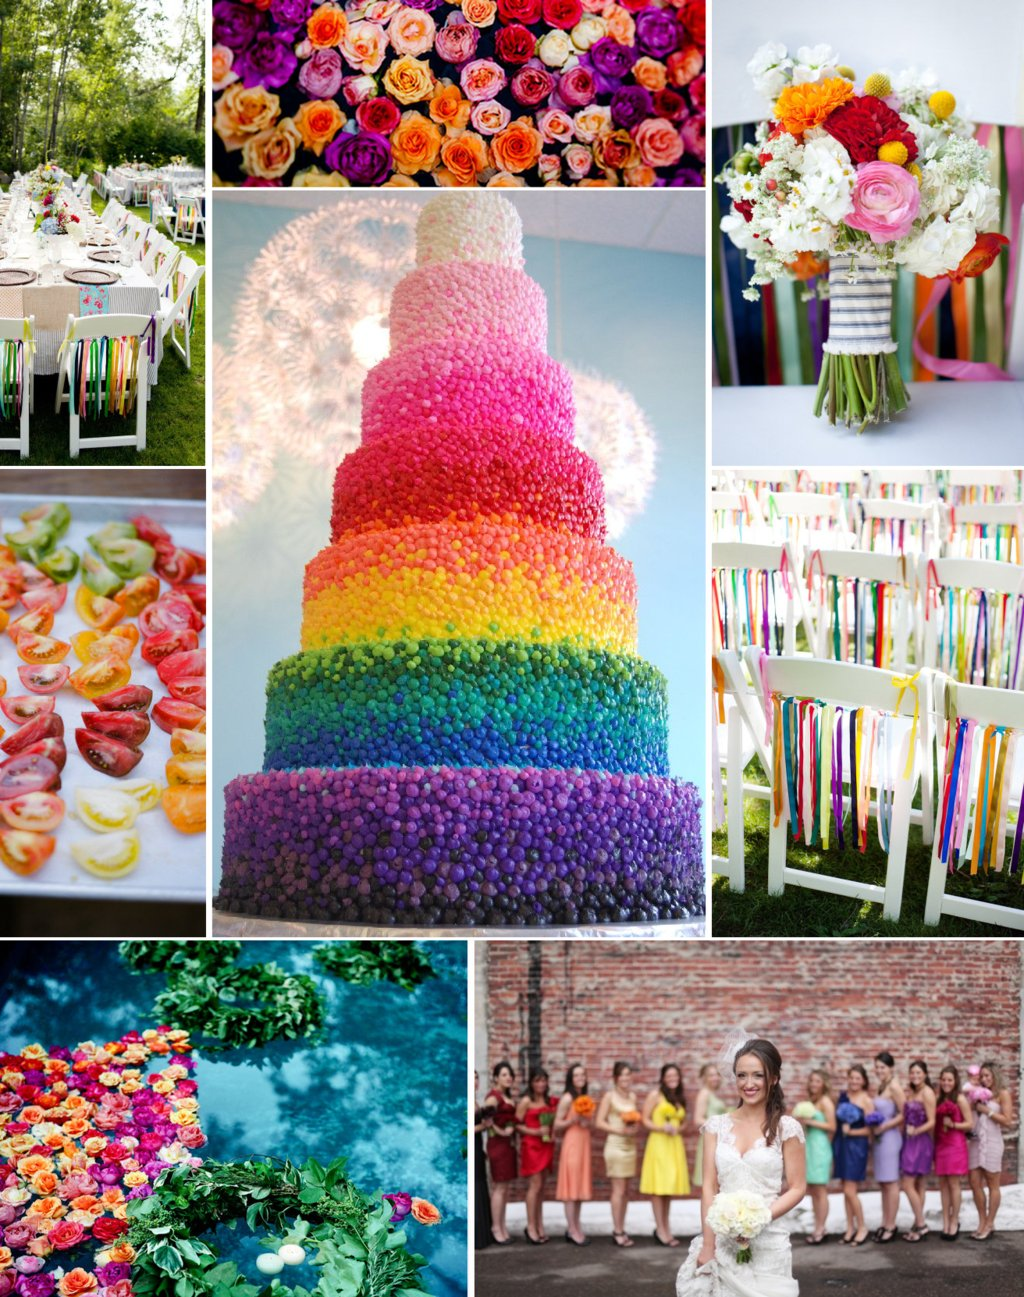 Wedding-color-inspiration-rainbow-bridesmaids-wedding-cake-decor.full